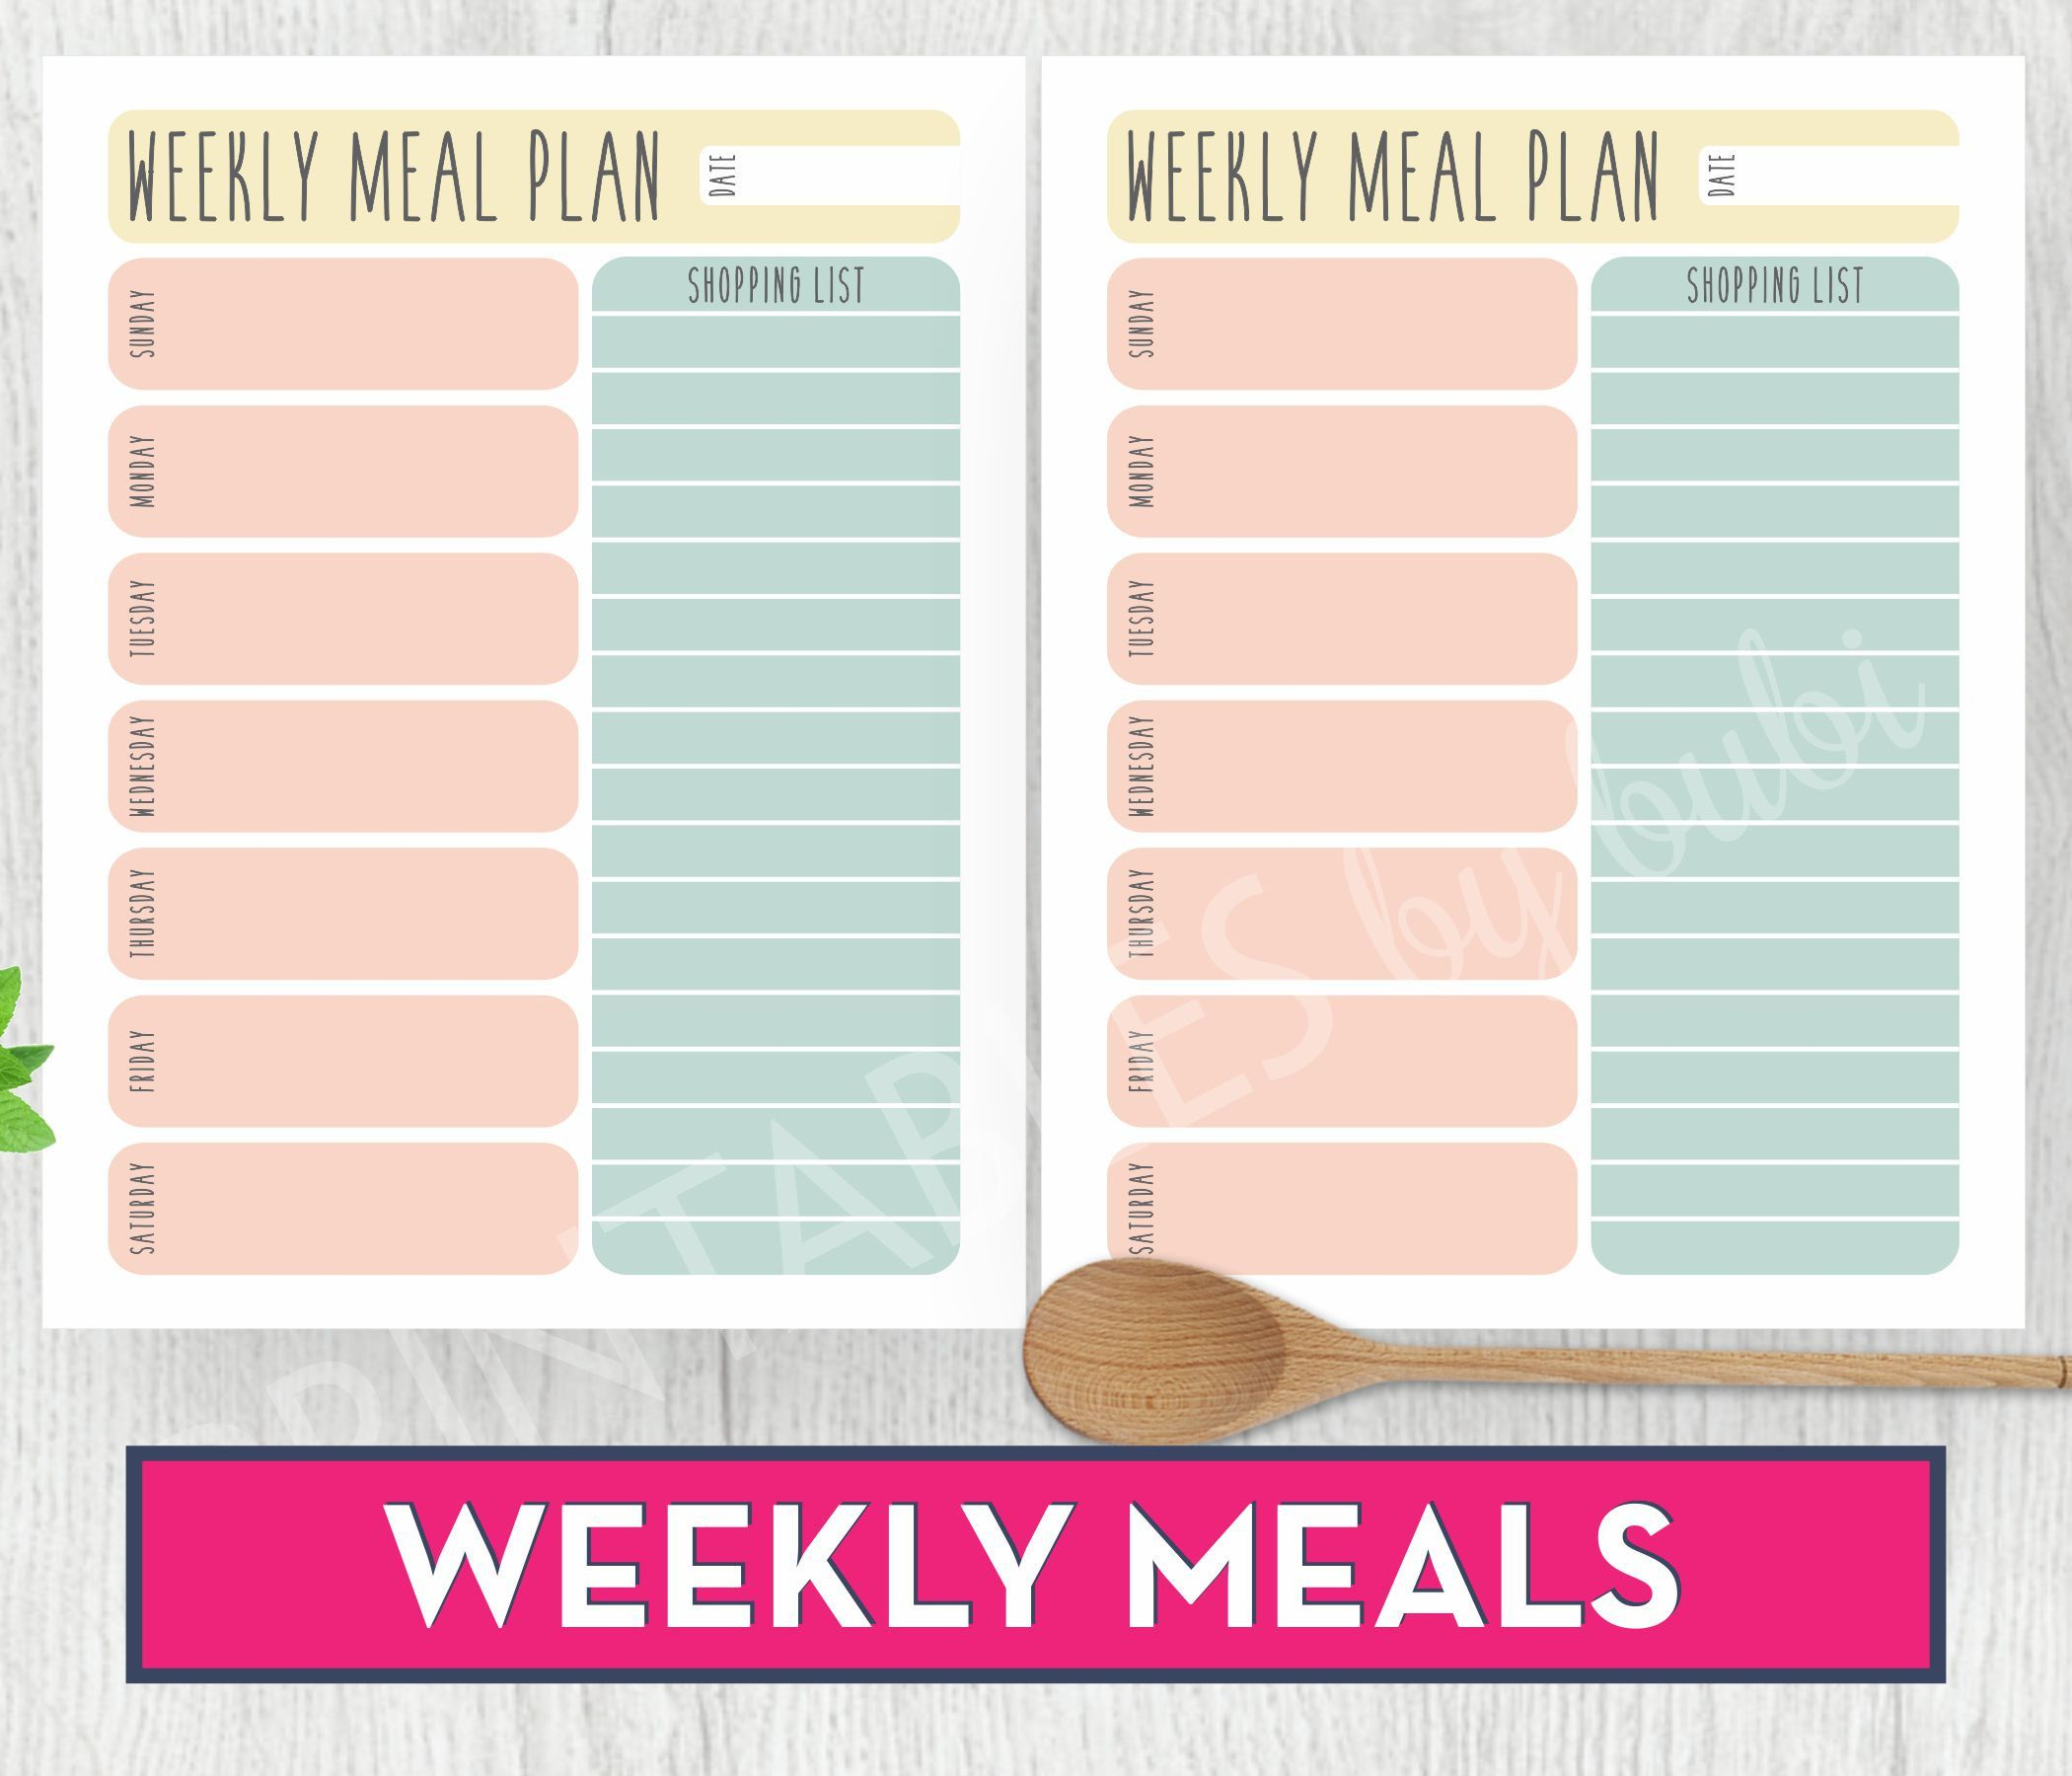 Meal Planner Grocery List Printable Shopping List